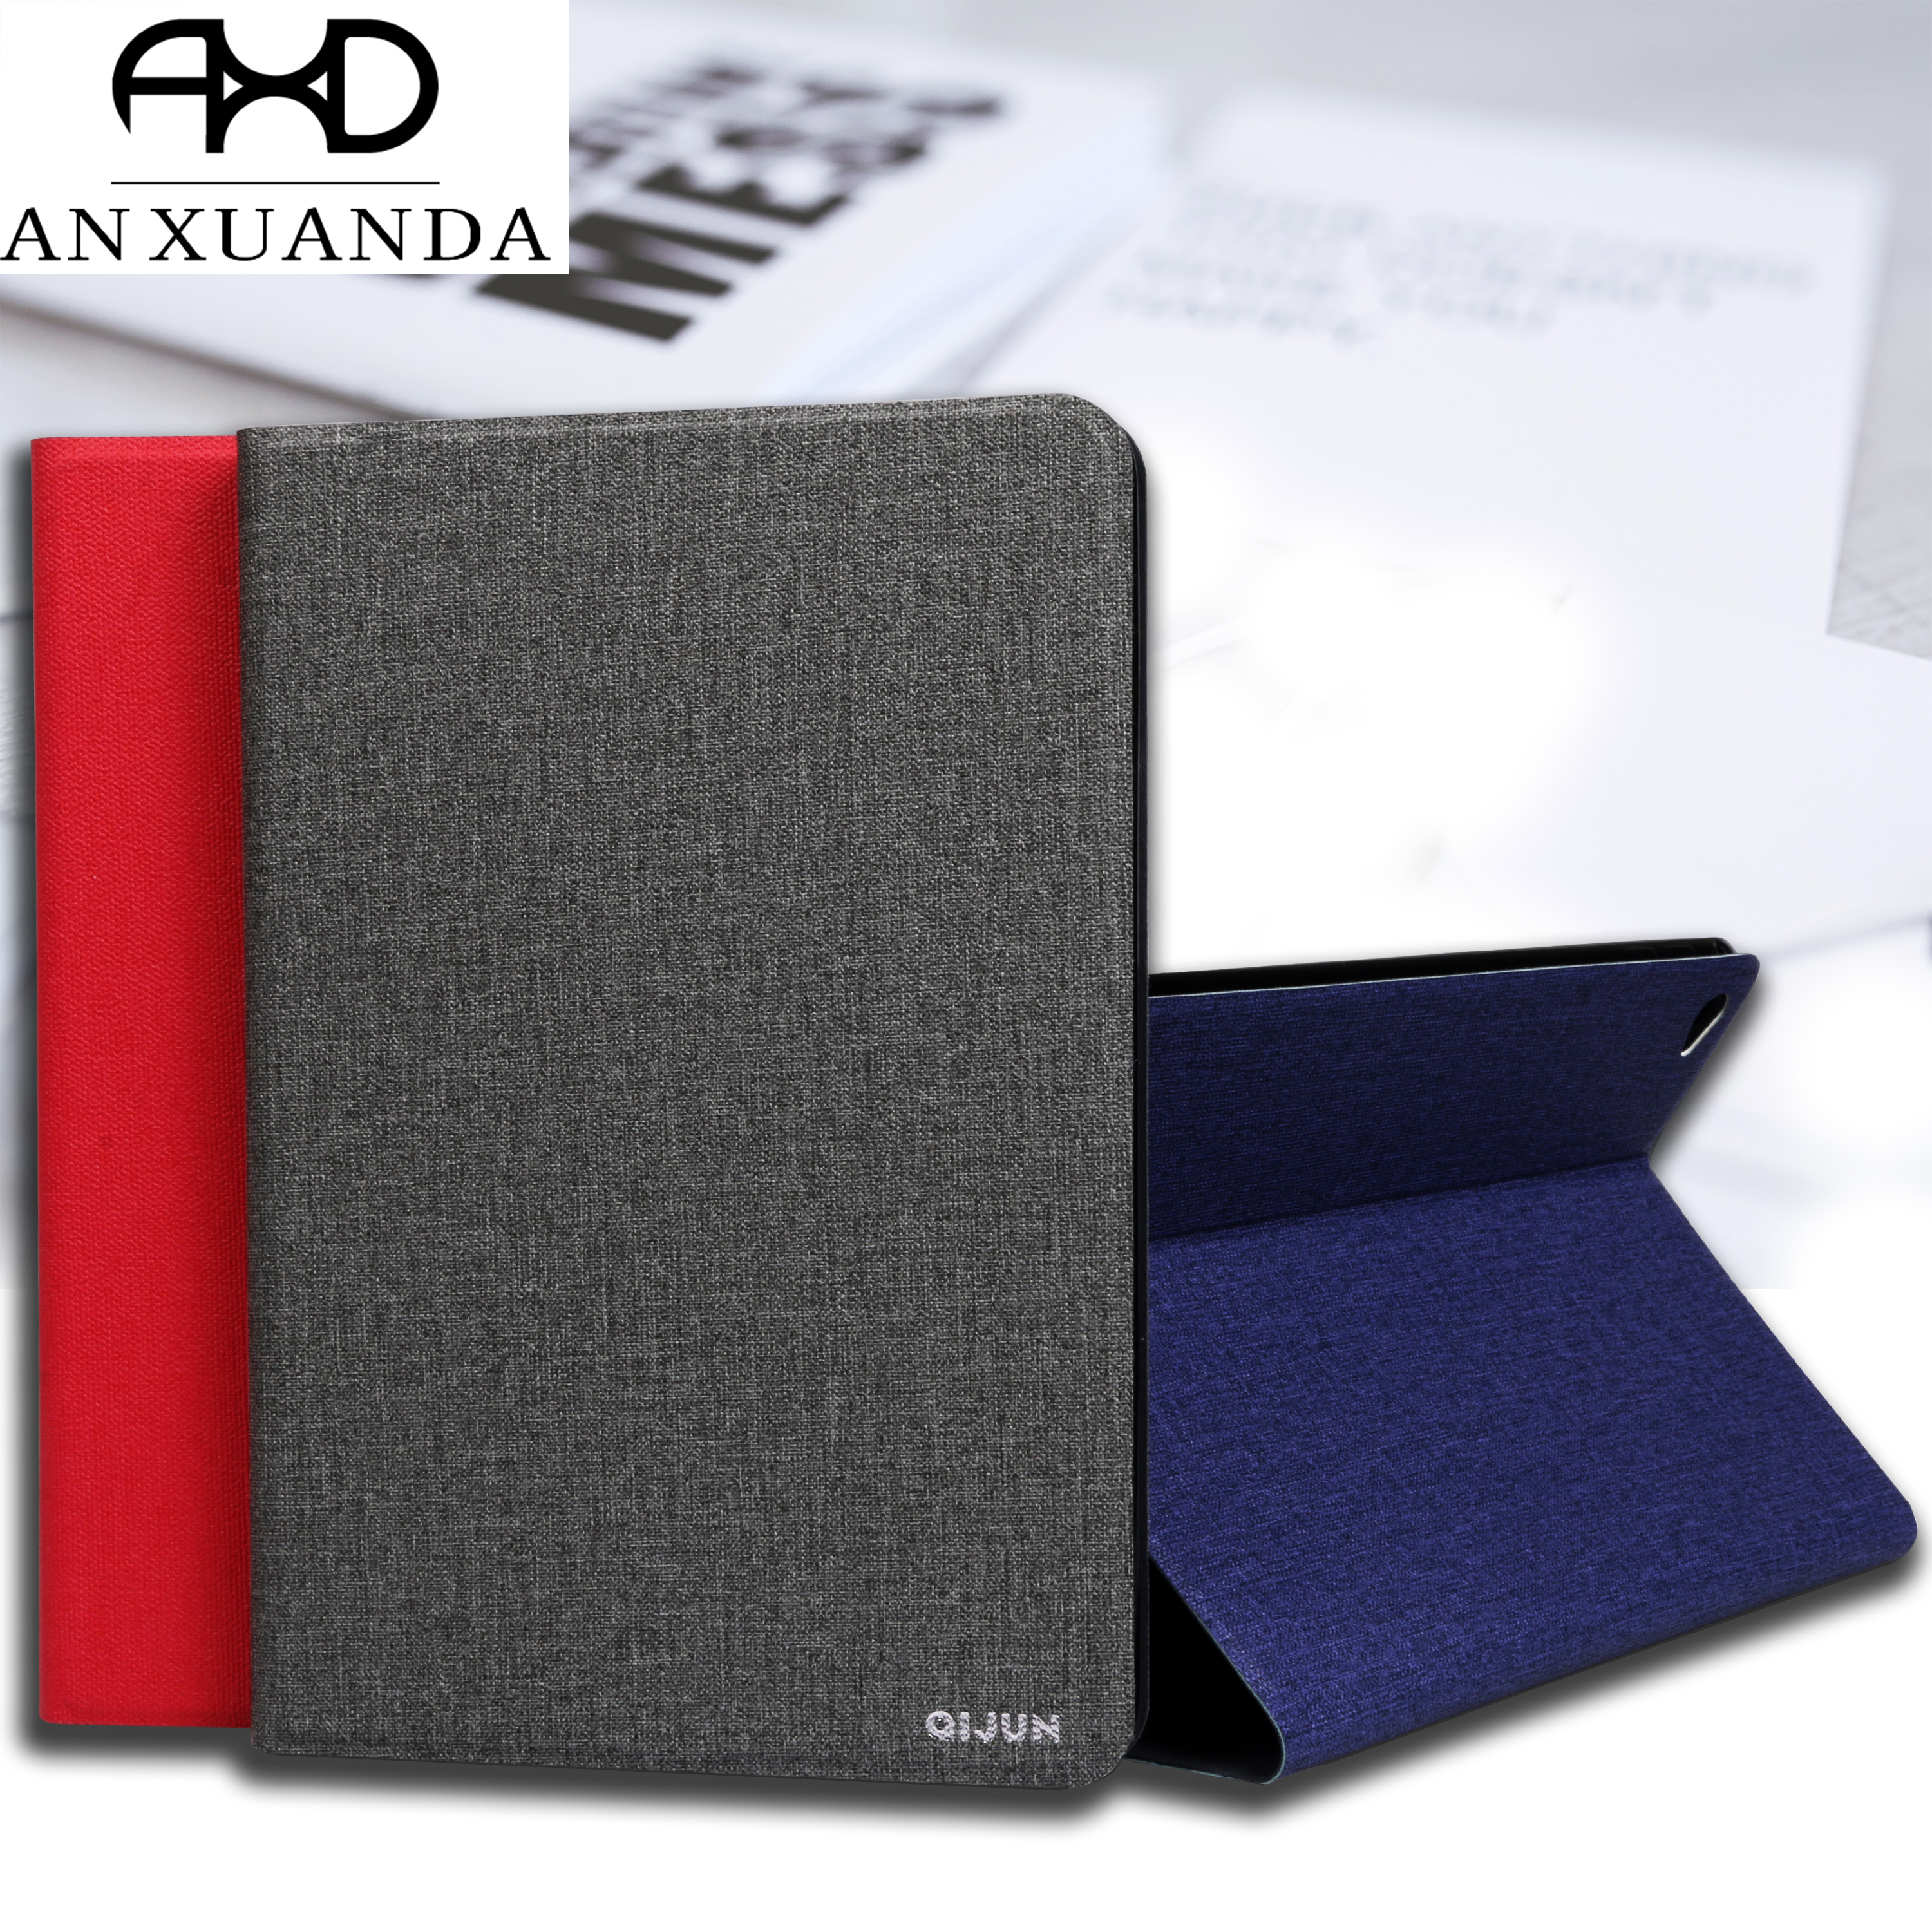 """For Apple iPad 9.7 inch 2018 ipad6 9.7"""" QIJUN Tablet Case for iPad 9.7 2018 ipad6 A1893 A1954 Slim Flip Cover Soft Stand Shell"""